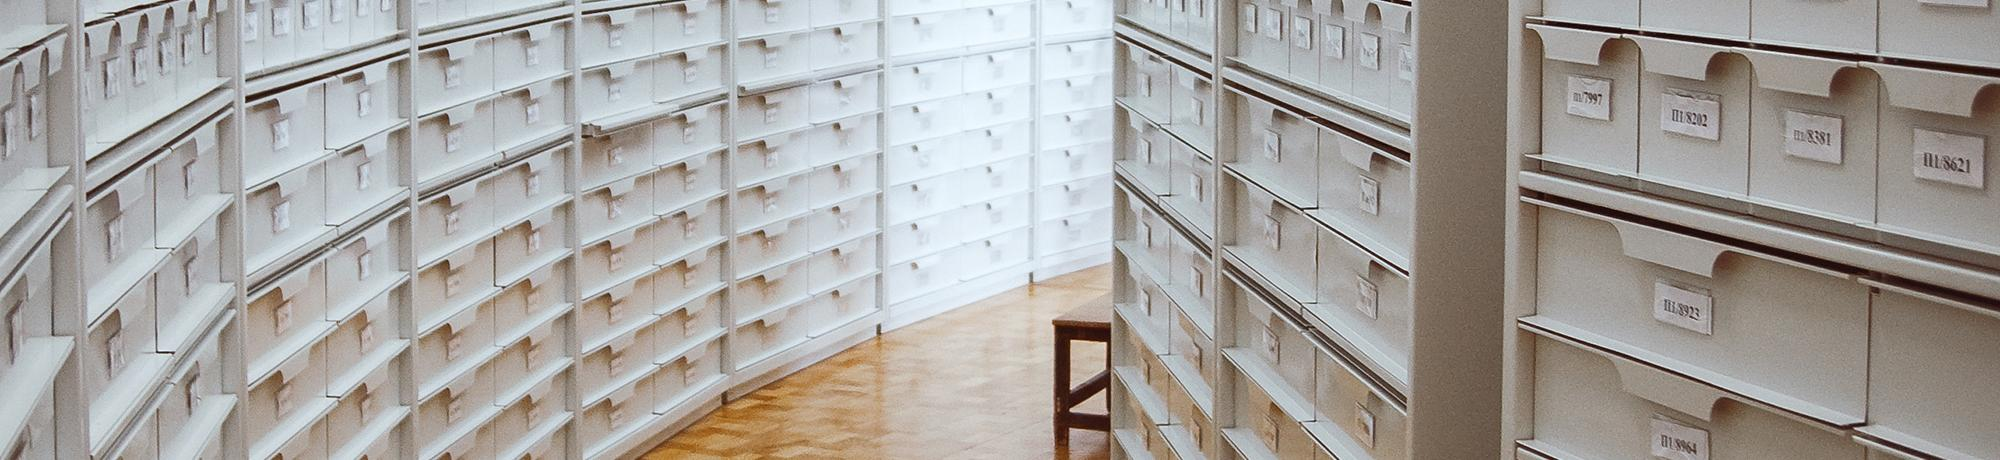 corridor of filing cabinets